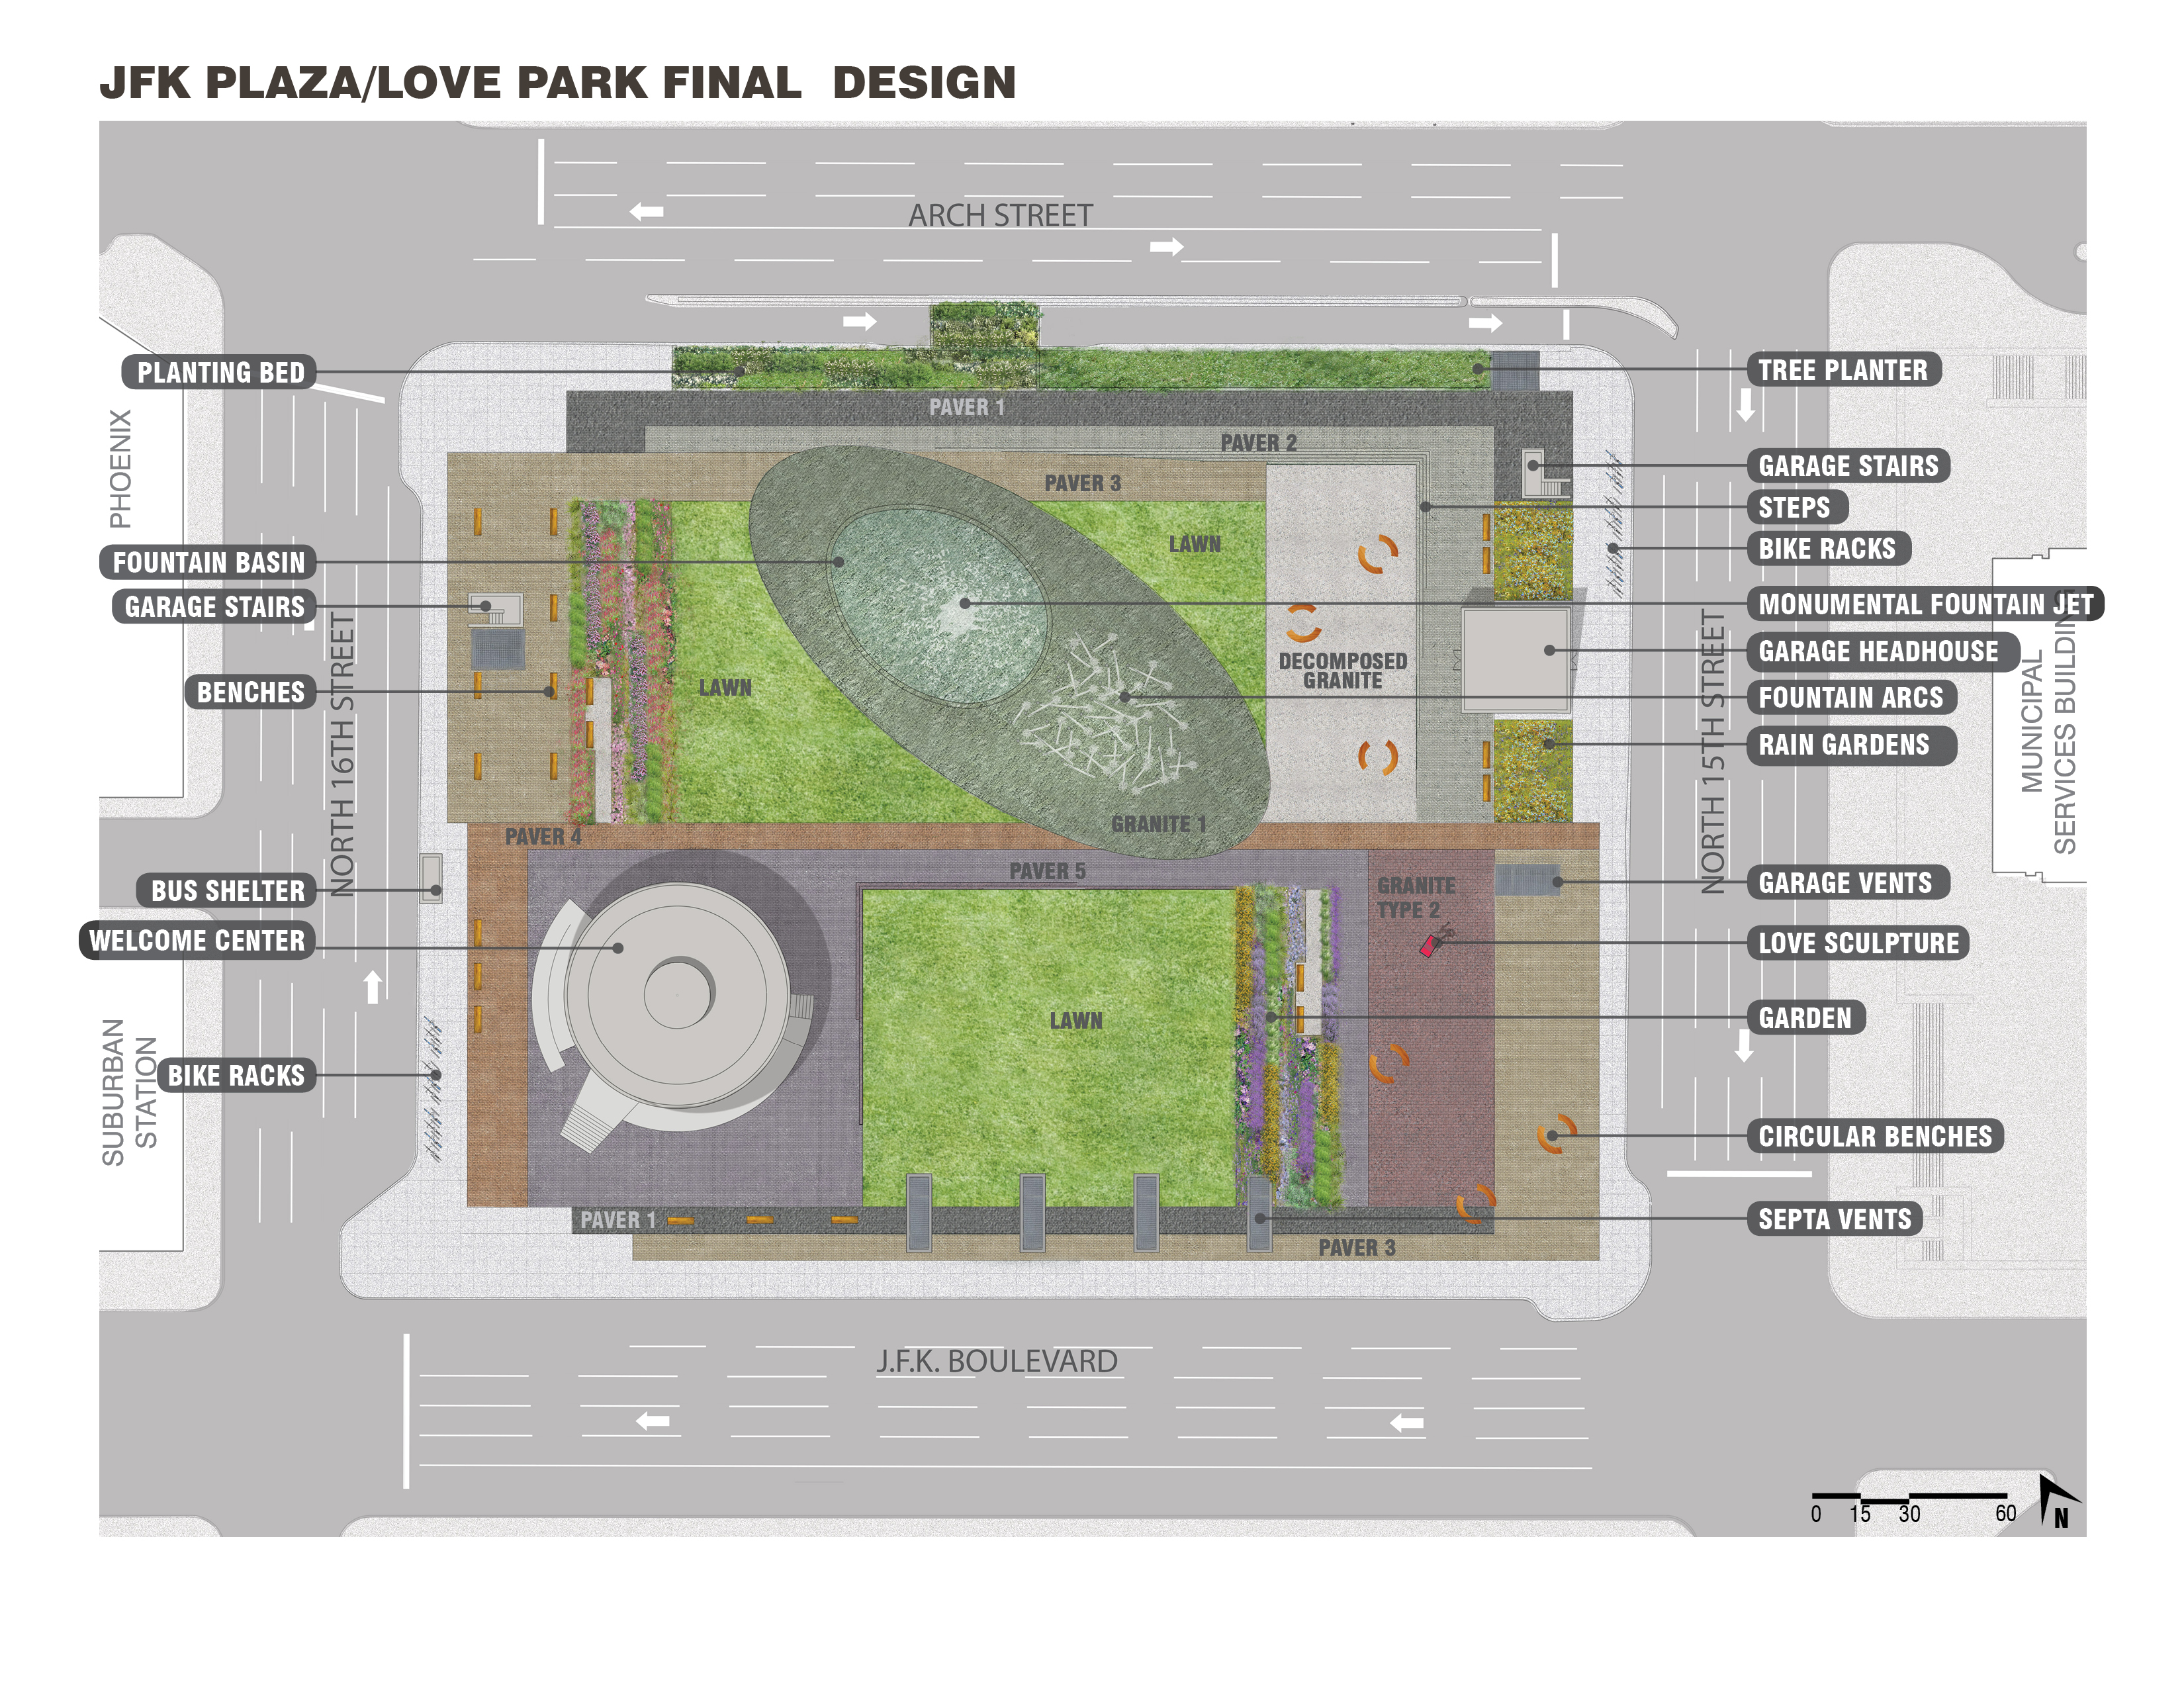 Plan of LOVE Park / JFK Plaza, October 2015 | Hargreaves